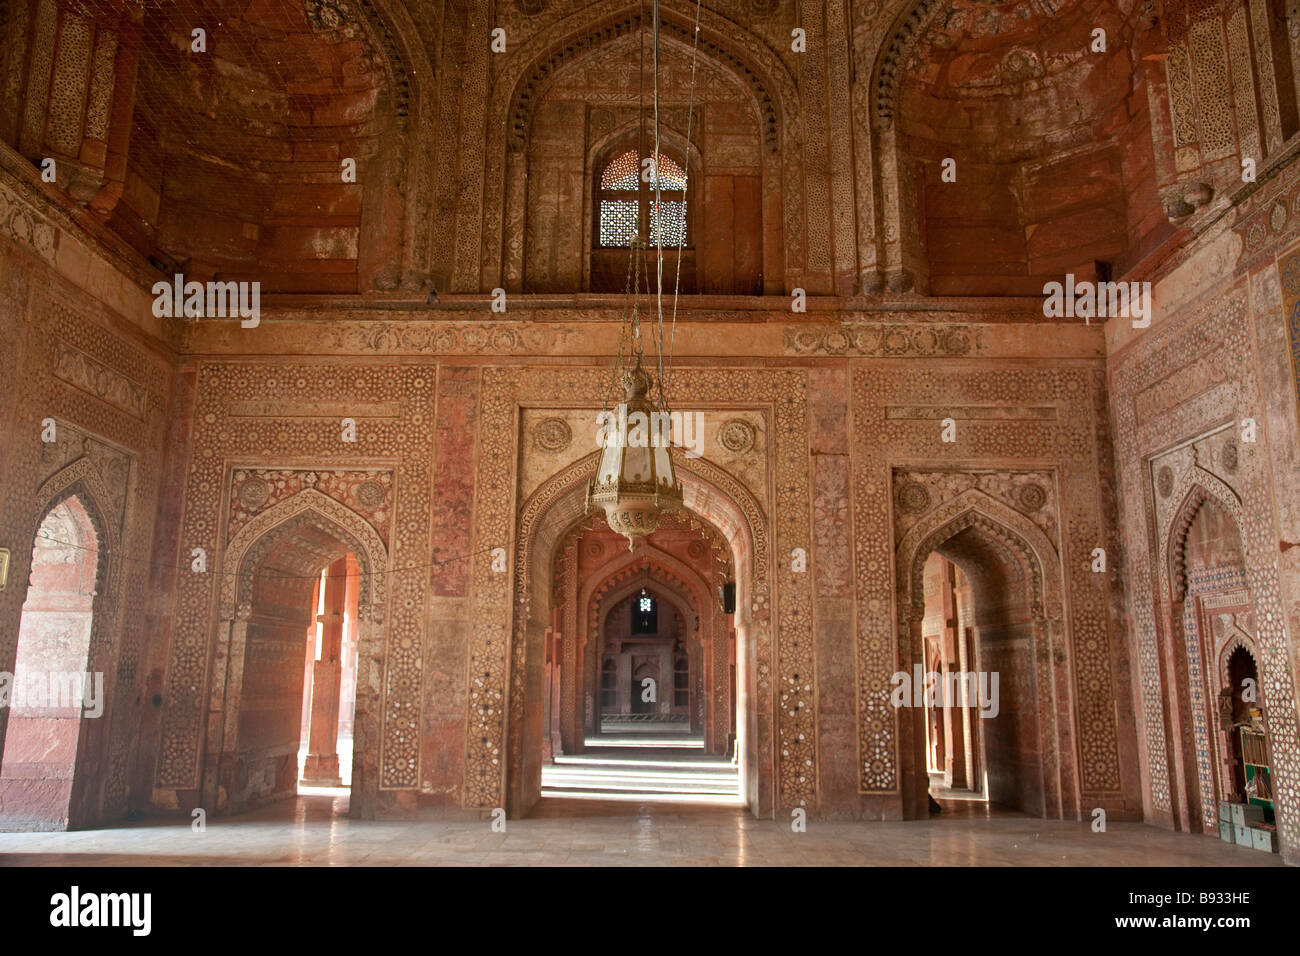 Inside the Friday Mosque or Jama Masjid in Fatehpur Sikri India Stock Photo